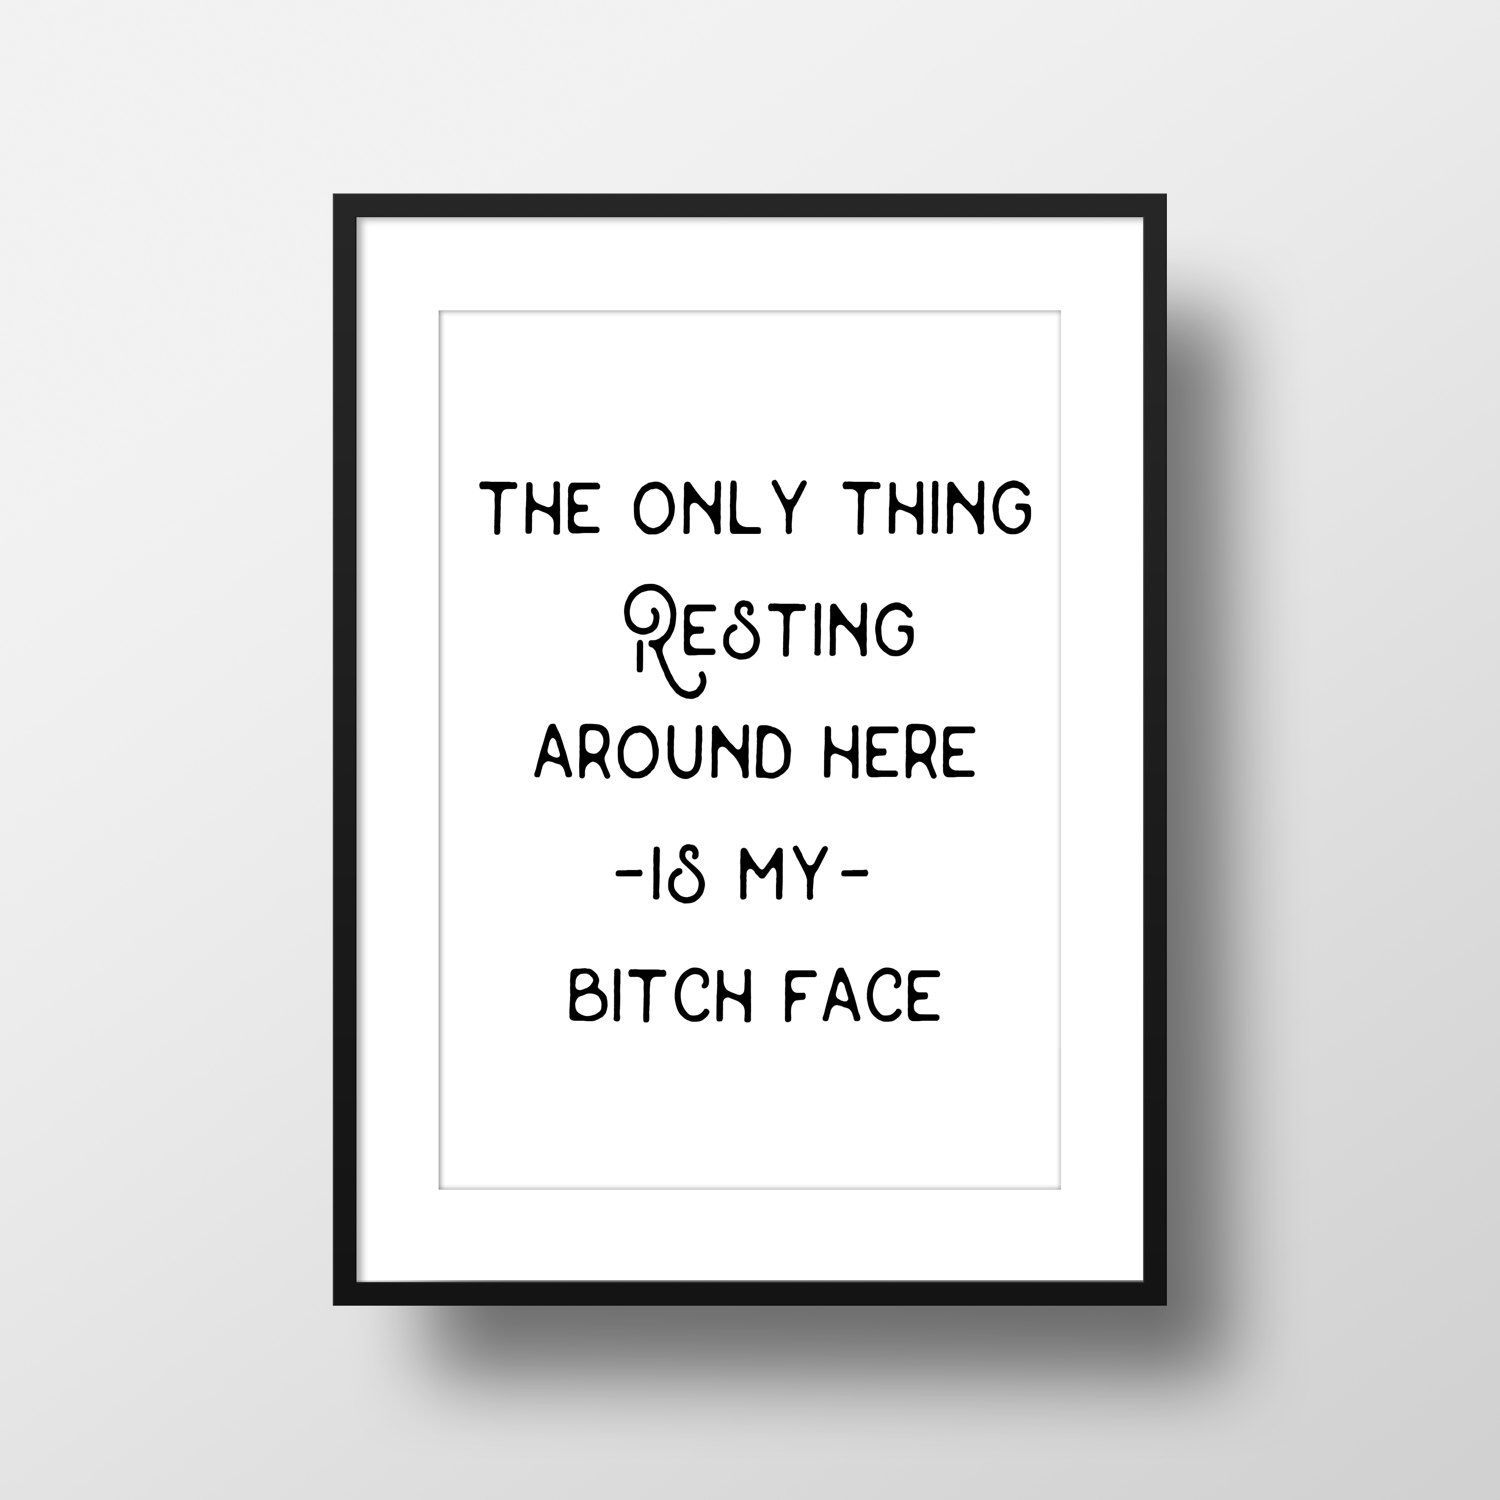 Resting Bitch Face | Gift For Boss | College Student Gift | Funny Motivational Quotes | Home Decor | Best Friend Gift Ideas For Birthday #birthdayquotesforboss Resting Bitch Face | Gift For Boss | College Student Gift | Funny Motivational Quotes | Home Decor | Best Friend Gift Ideas For Birthday #birthdayquotesforboss